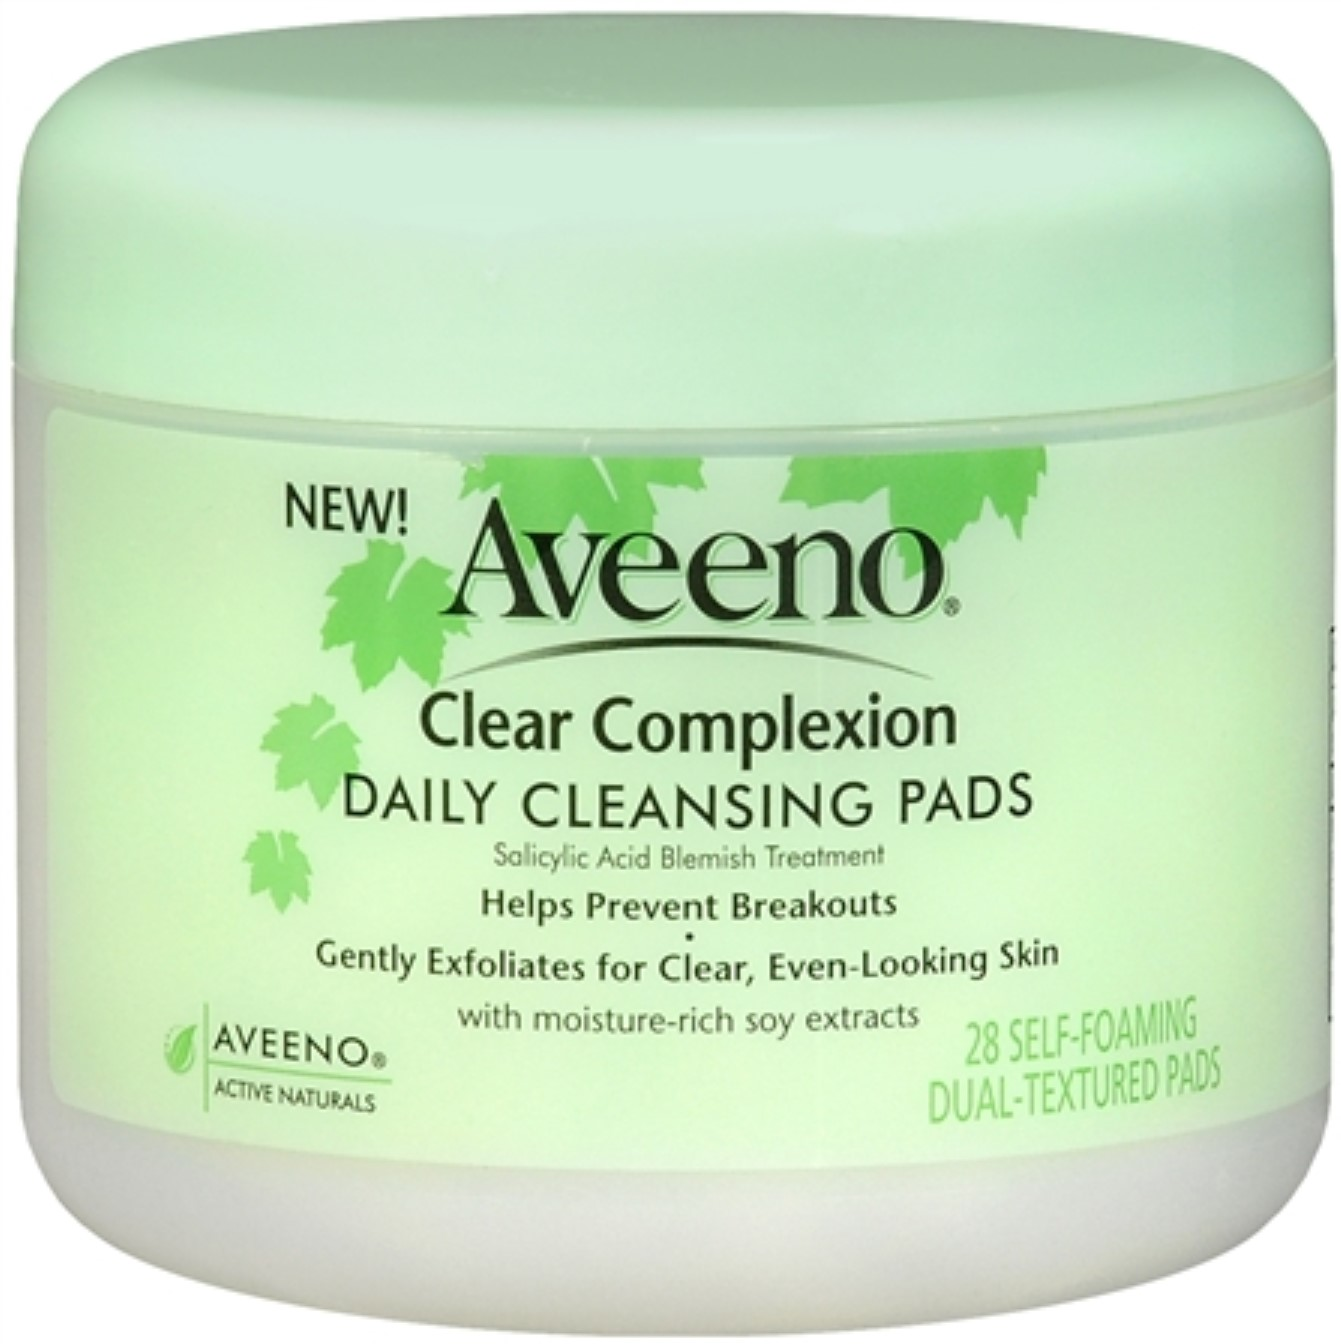 2 Pack - AVEENO Clear Complexion Daily Cleansing Pads 28 Each